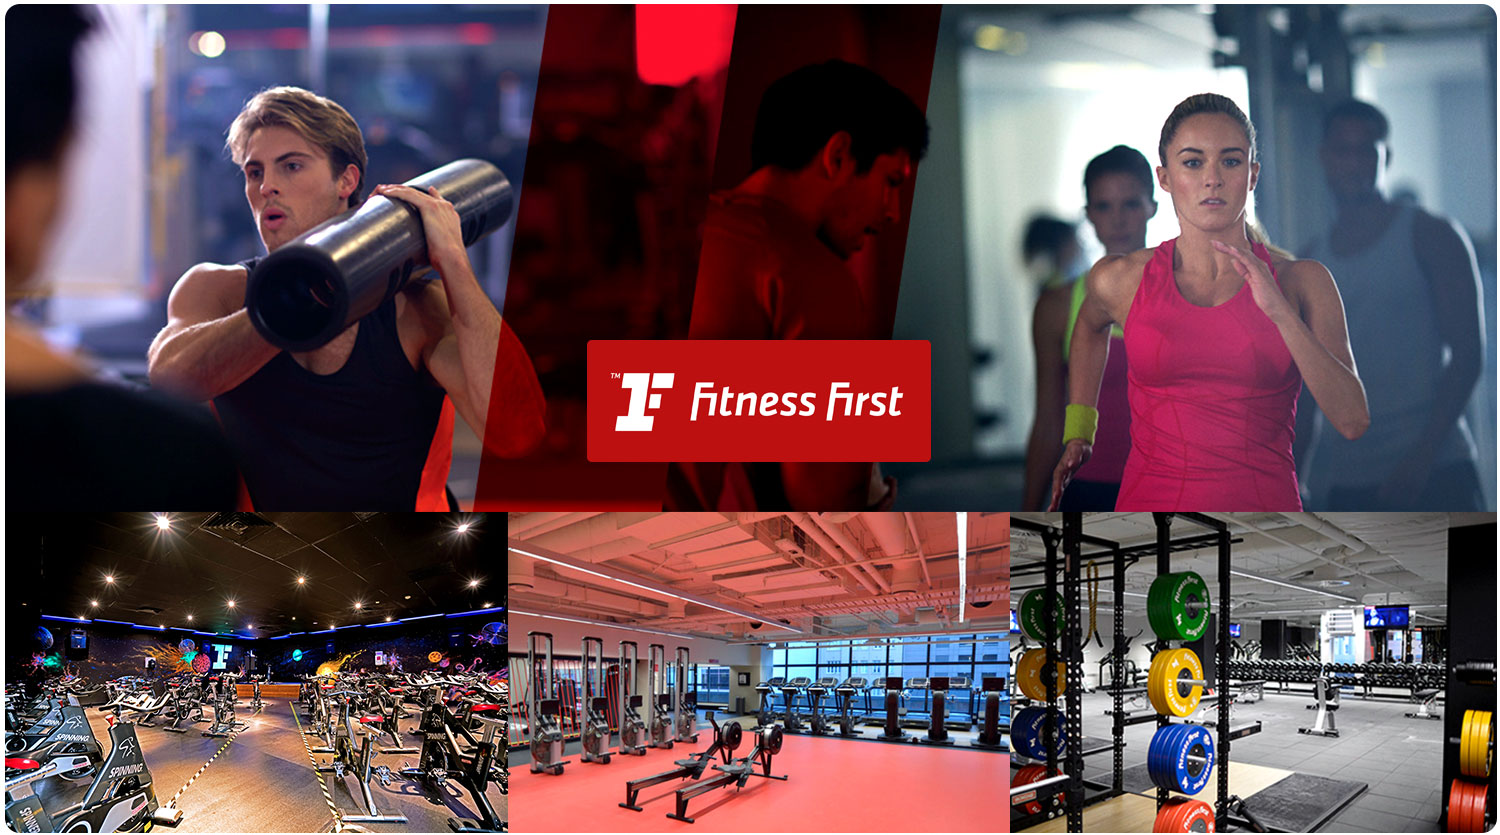 Start your Fitness Journey with Fitness First with only $14.95 for 14 days at Fitness First Sydney NSW. Experience our first class gym and freestyle classes inc. and more. Take the first step with Fitness First Sydney NSW.